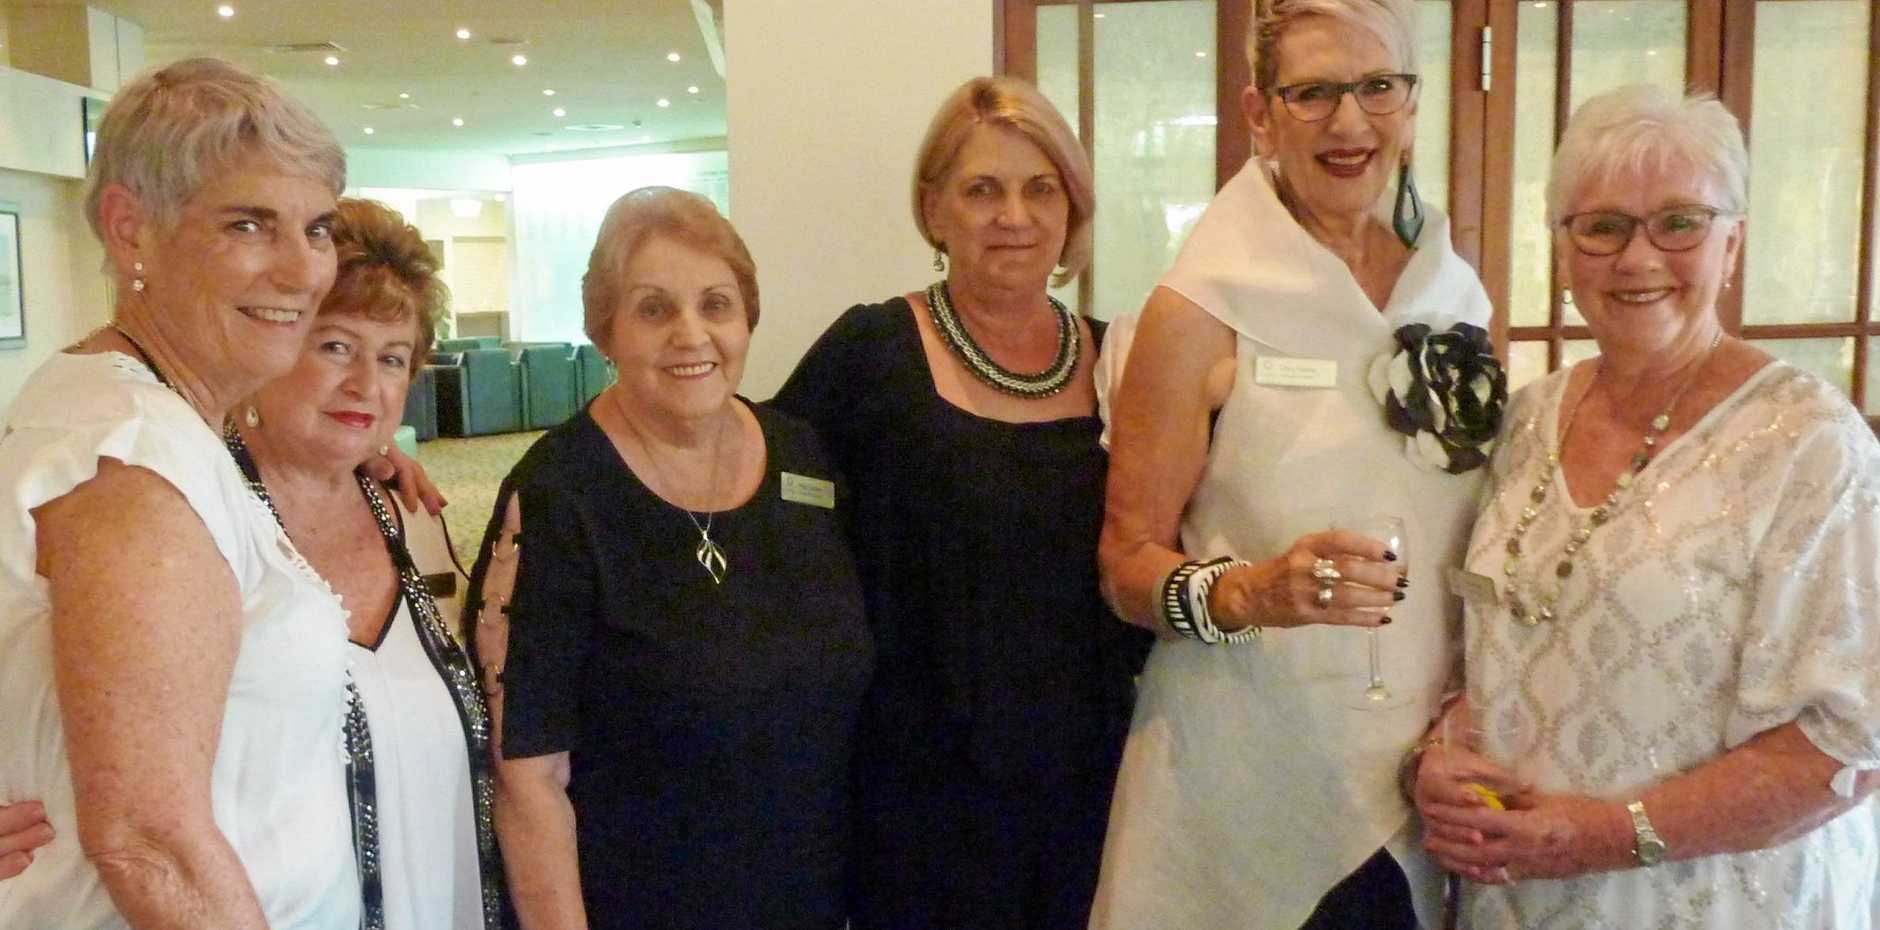 Caloundra Evening VIEW members (from left) Clodagh Barwise-Smith, Linda Warner, May Thomas, Rosemary Loughran, Chris Keates and Di Townsend were excited to be reunited at the VIEW Club's 2019 Friendship Dinner at Pelican Waters Golf Club.